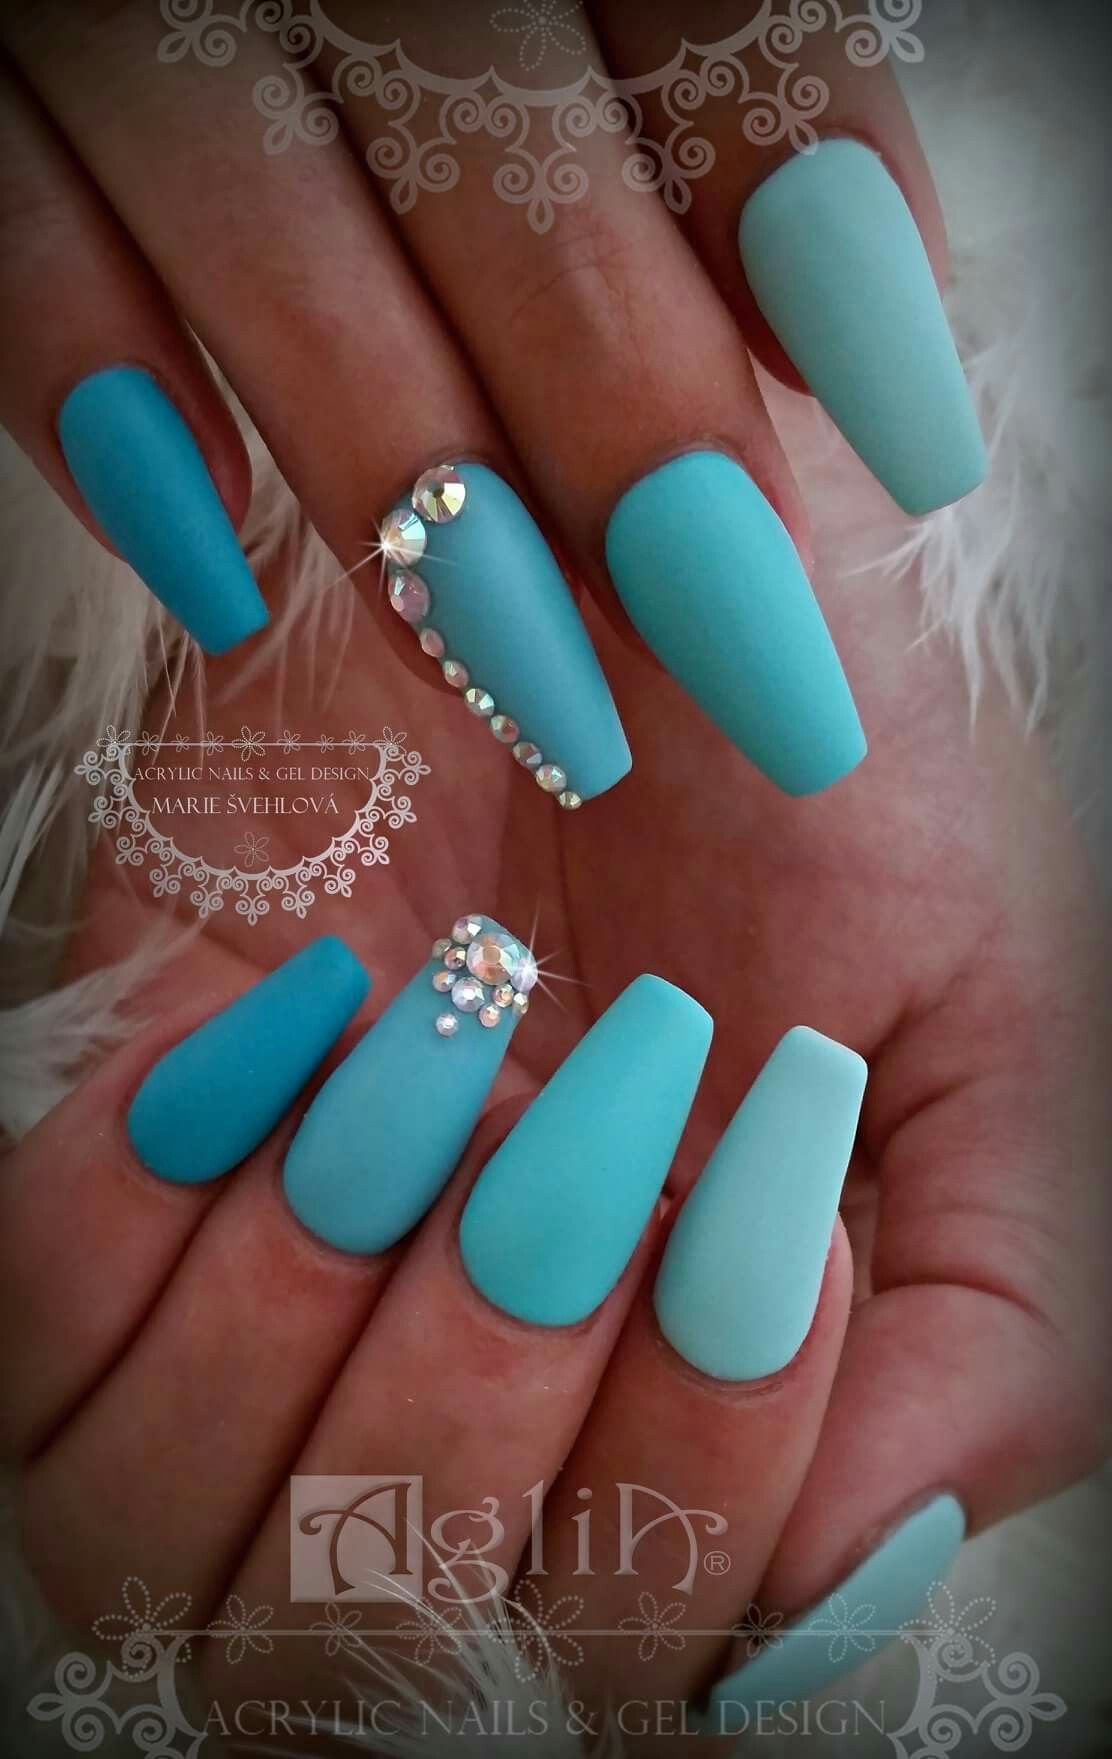 Acrylic Nails Gel Design Matte Nails